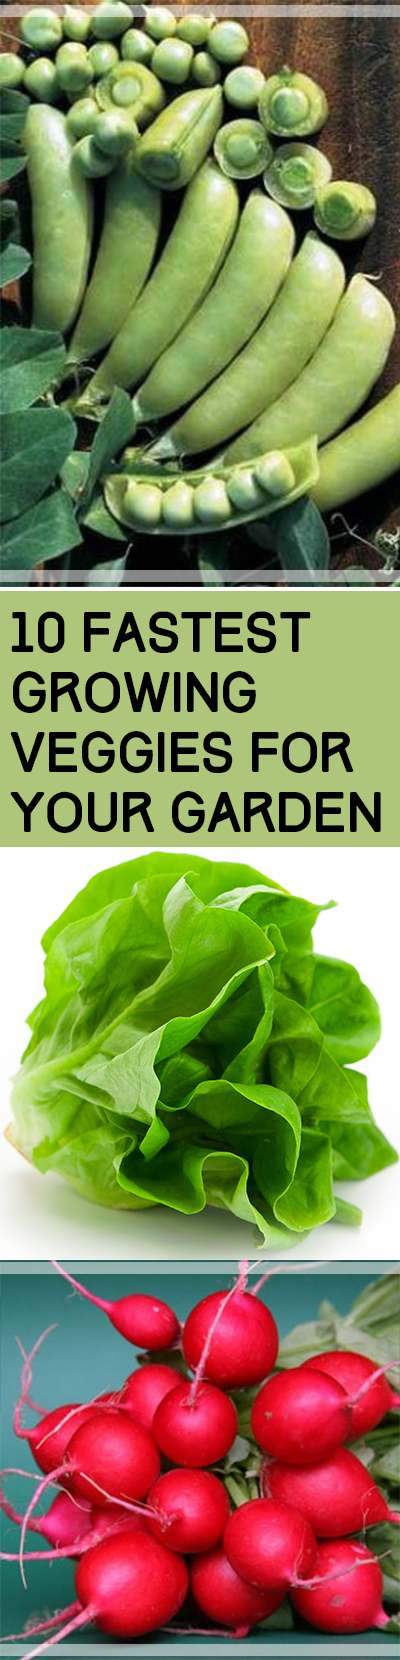 Fast growing veggies, vegetable gardening, growing vegetables, popular pin, gardening hacks, gardening tips.